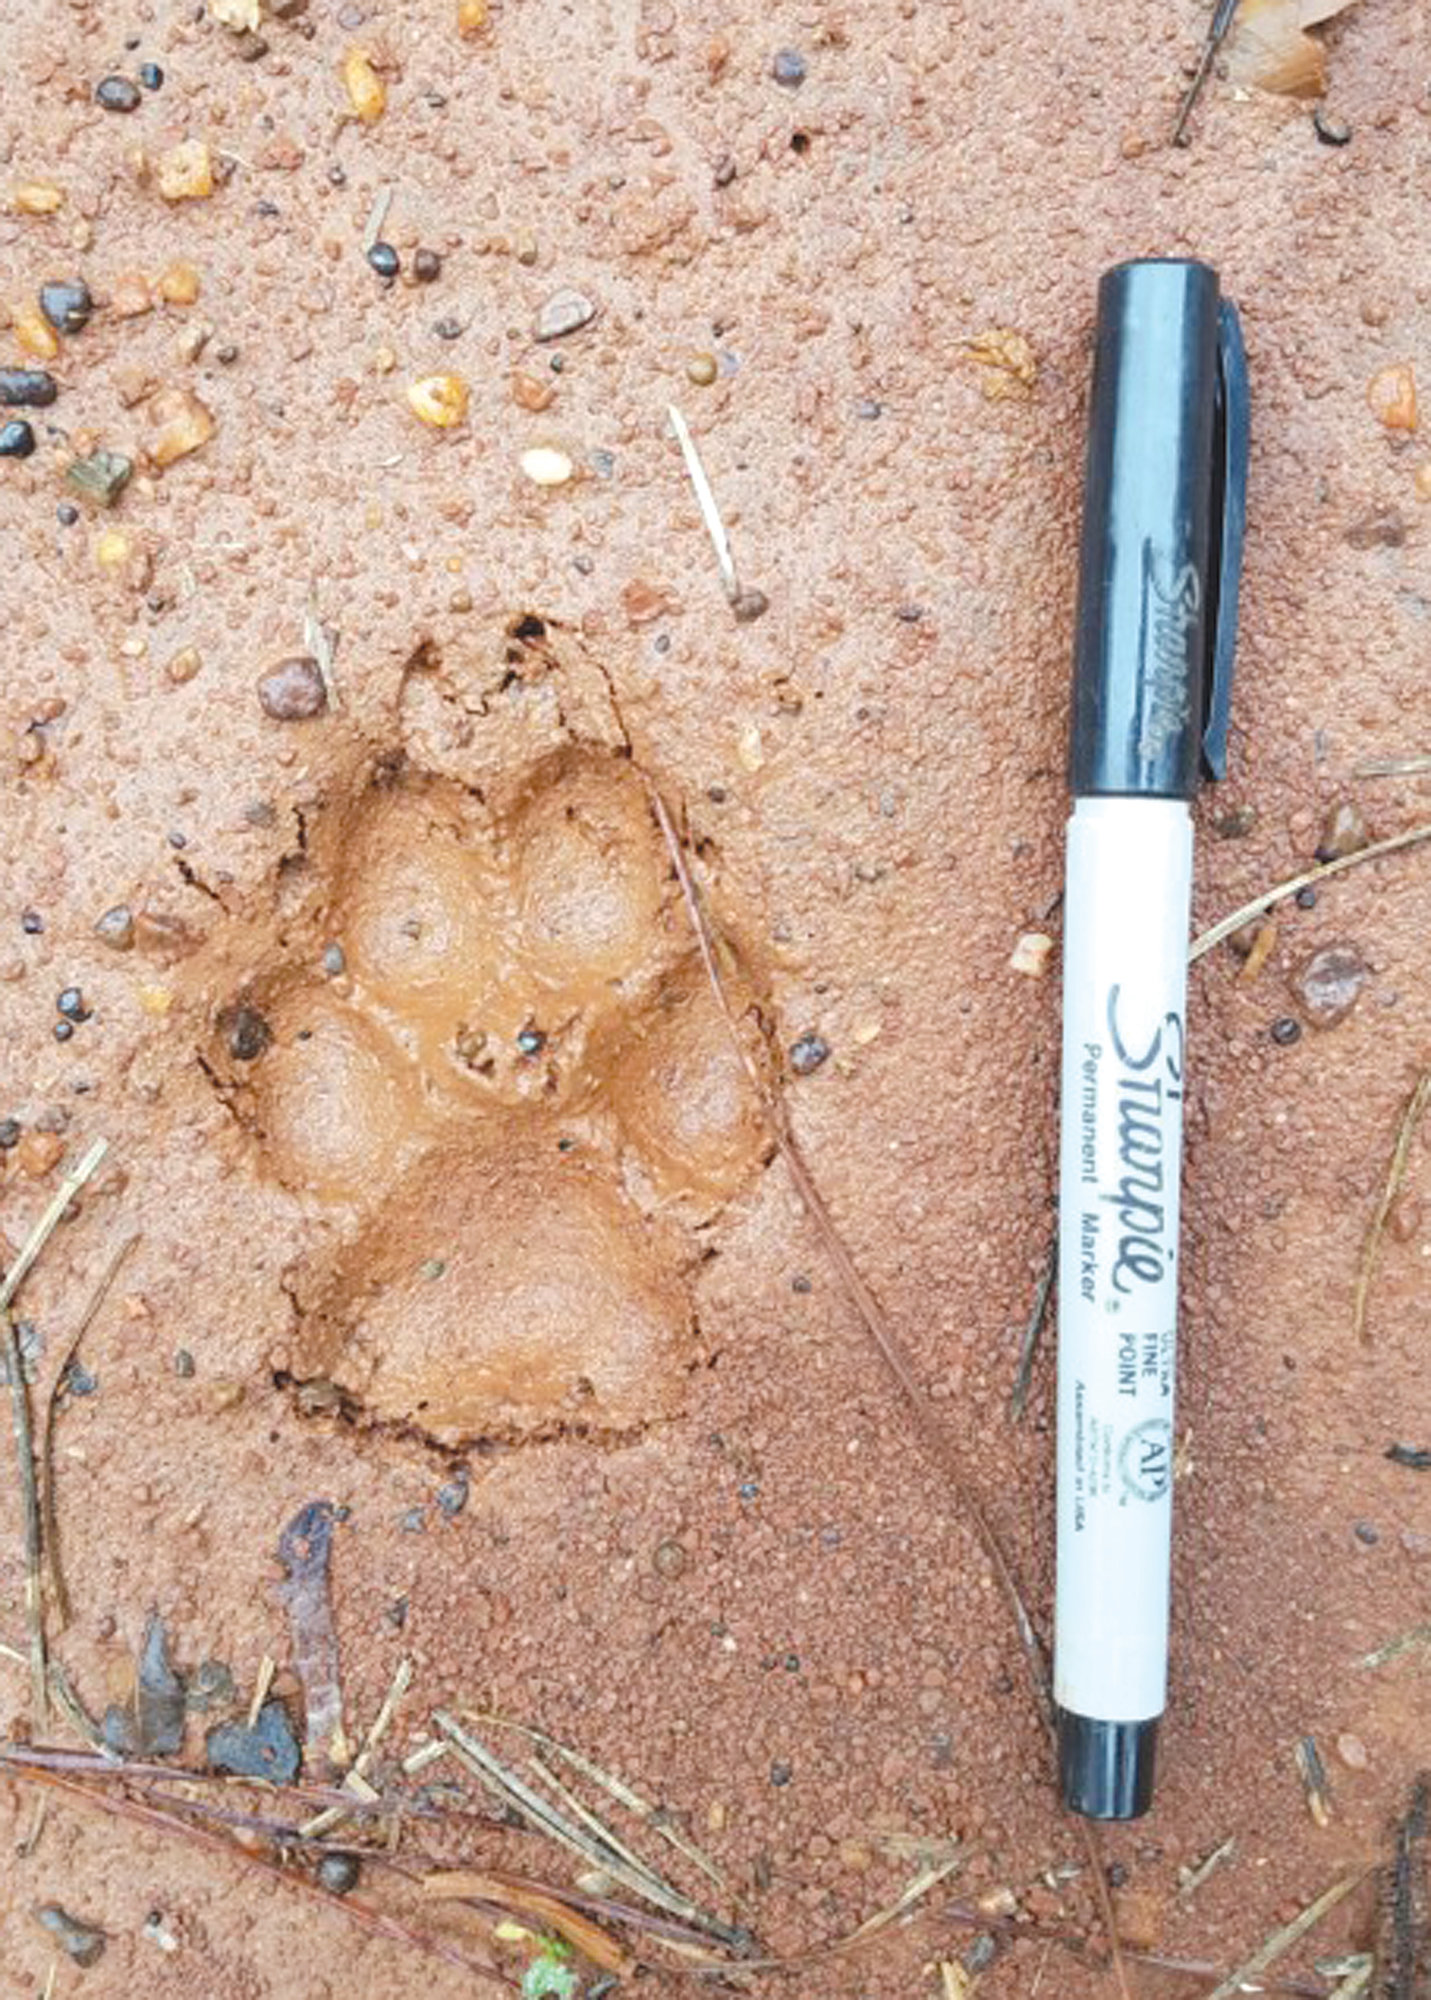 A coyote paw print is seen during Clemson research to better understand how coyotes are affecting deer in South Carolina's Piedmont region.